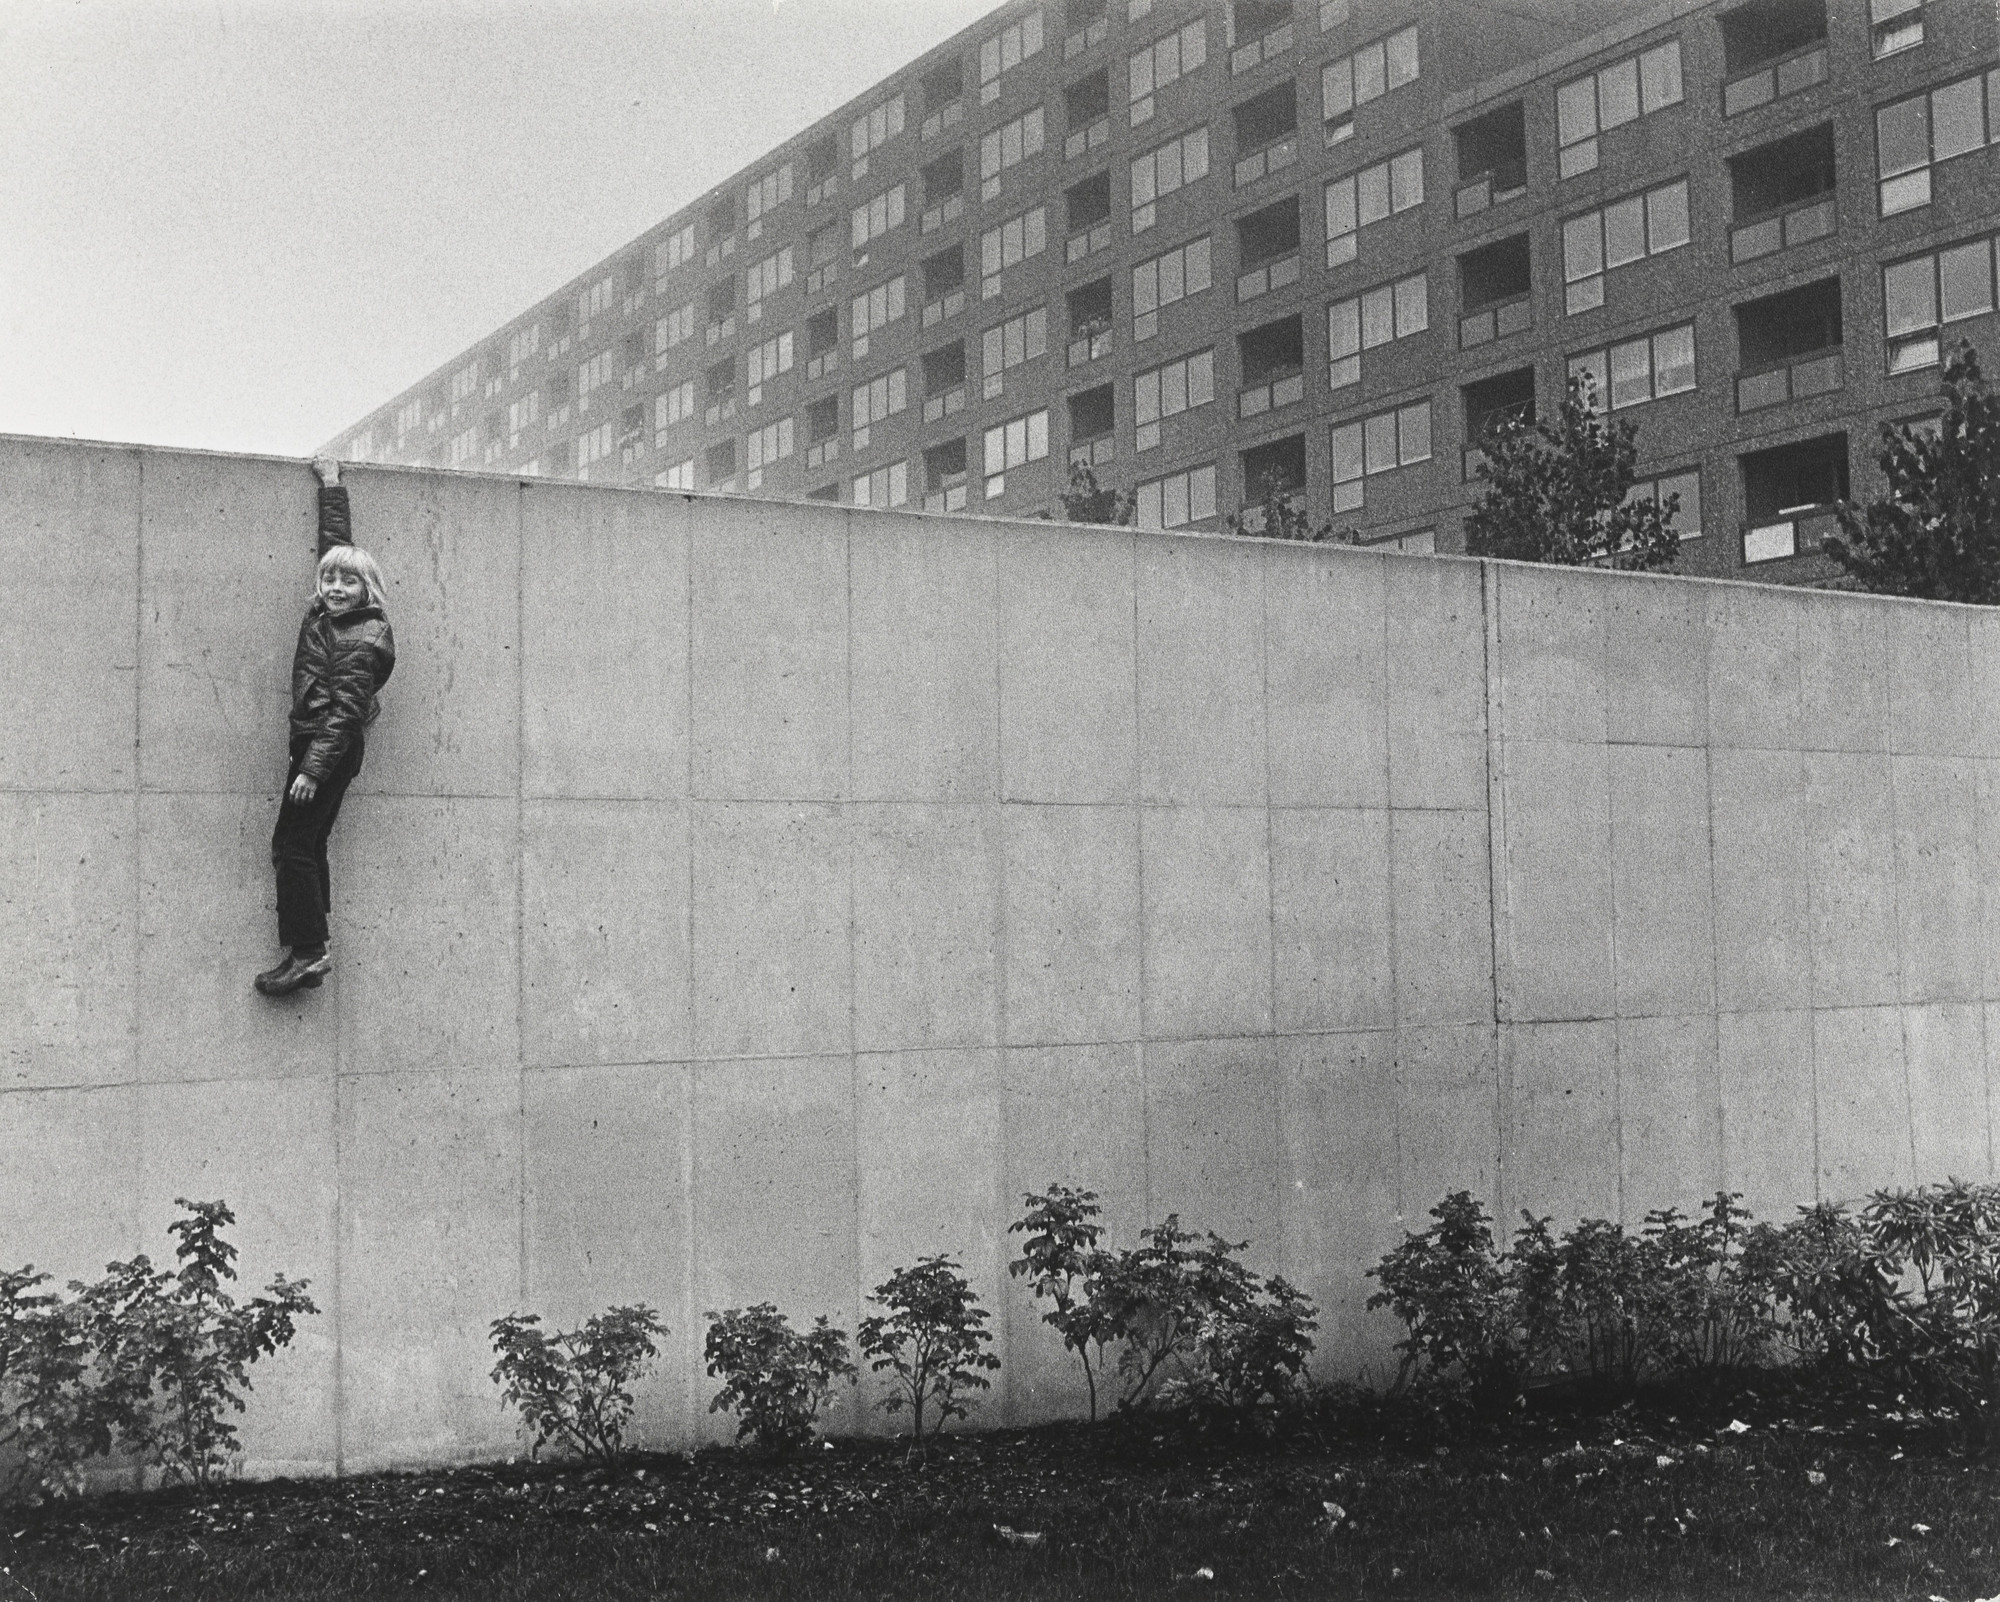 Jens S Jensen. Boy on the Wall, Hammarkullen, Gothenburg. 1973